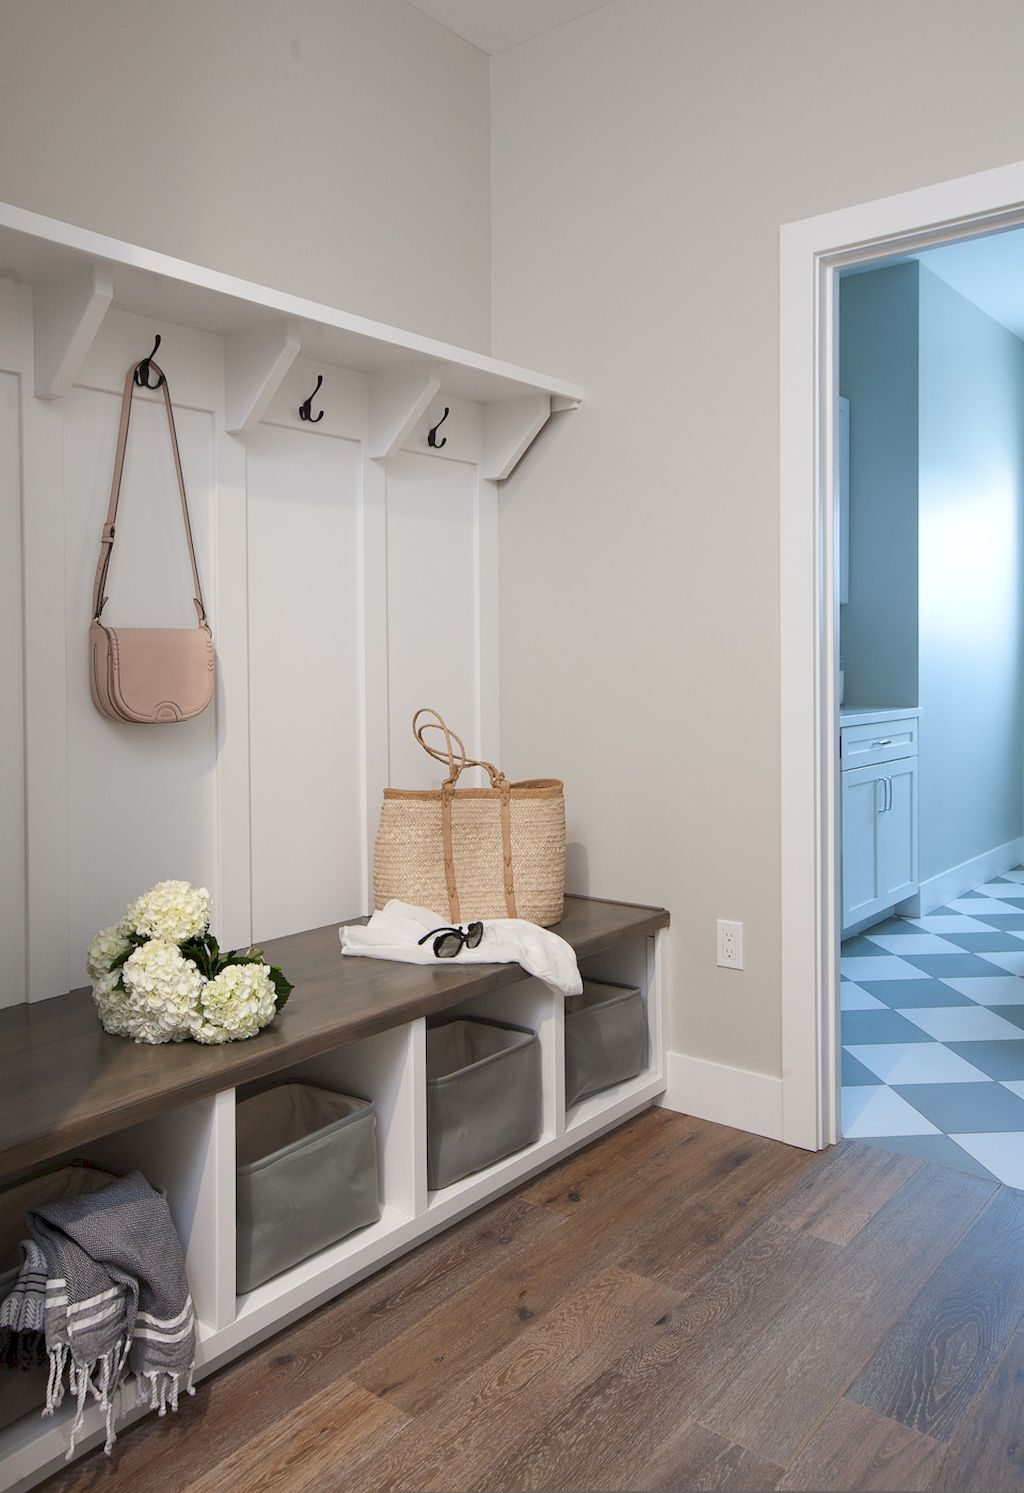 80 Diy Rustic Mudroom Entryway Decor Ideas With Images Home Oak Wood Floors Built In Bench